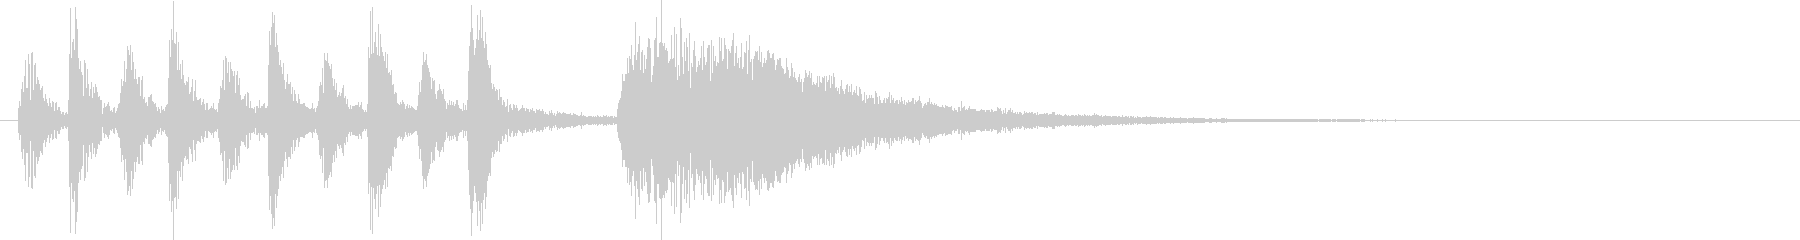 A short song representing the situation's unreproduced waveform